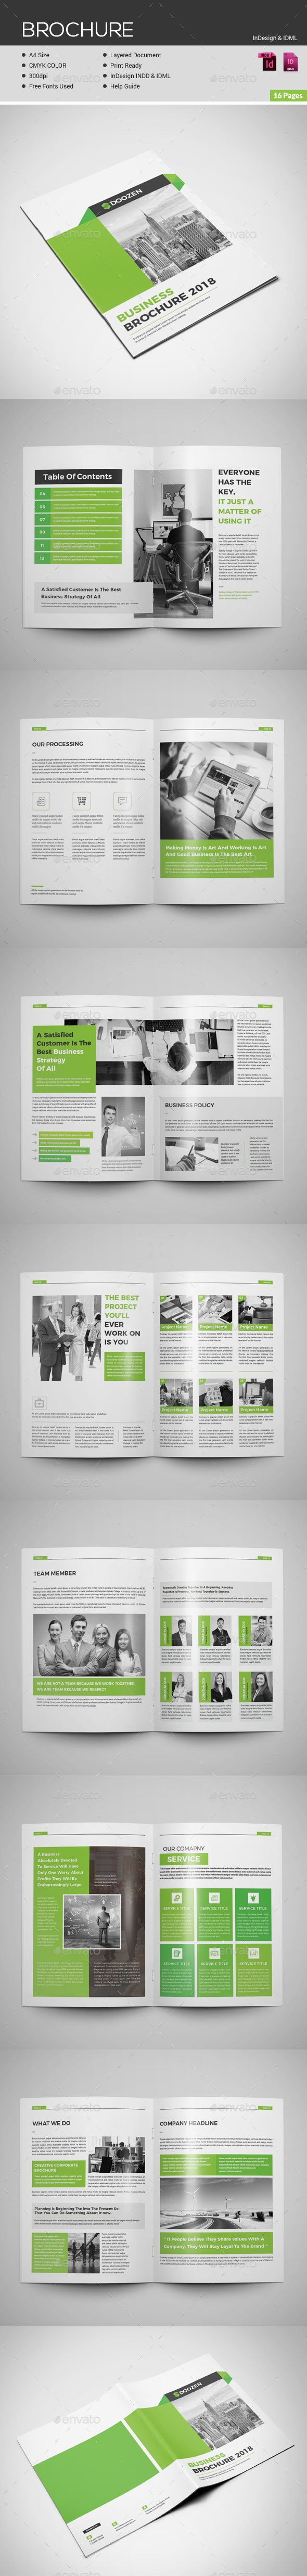 brochure template 16 pages a4 size download https